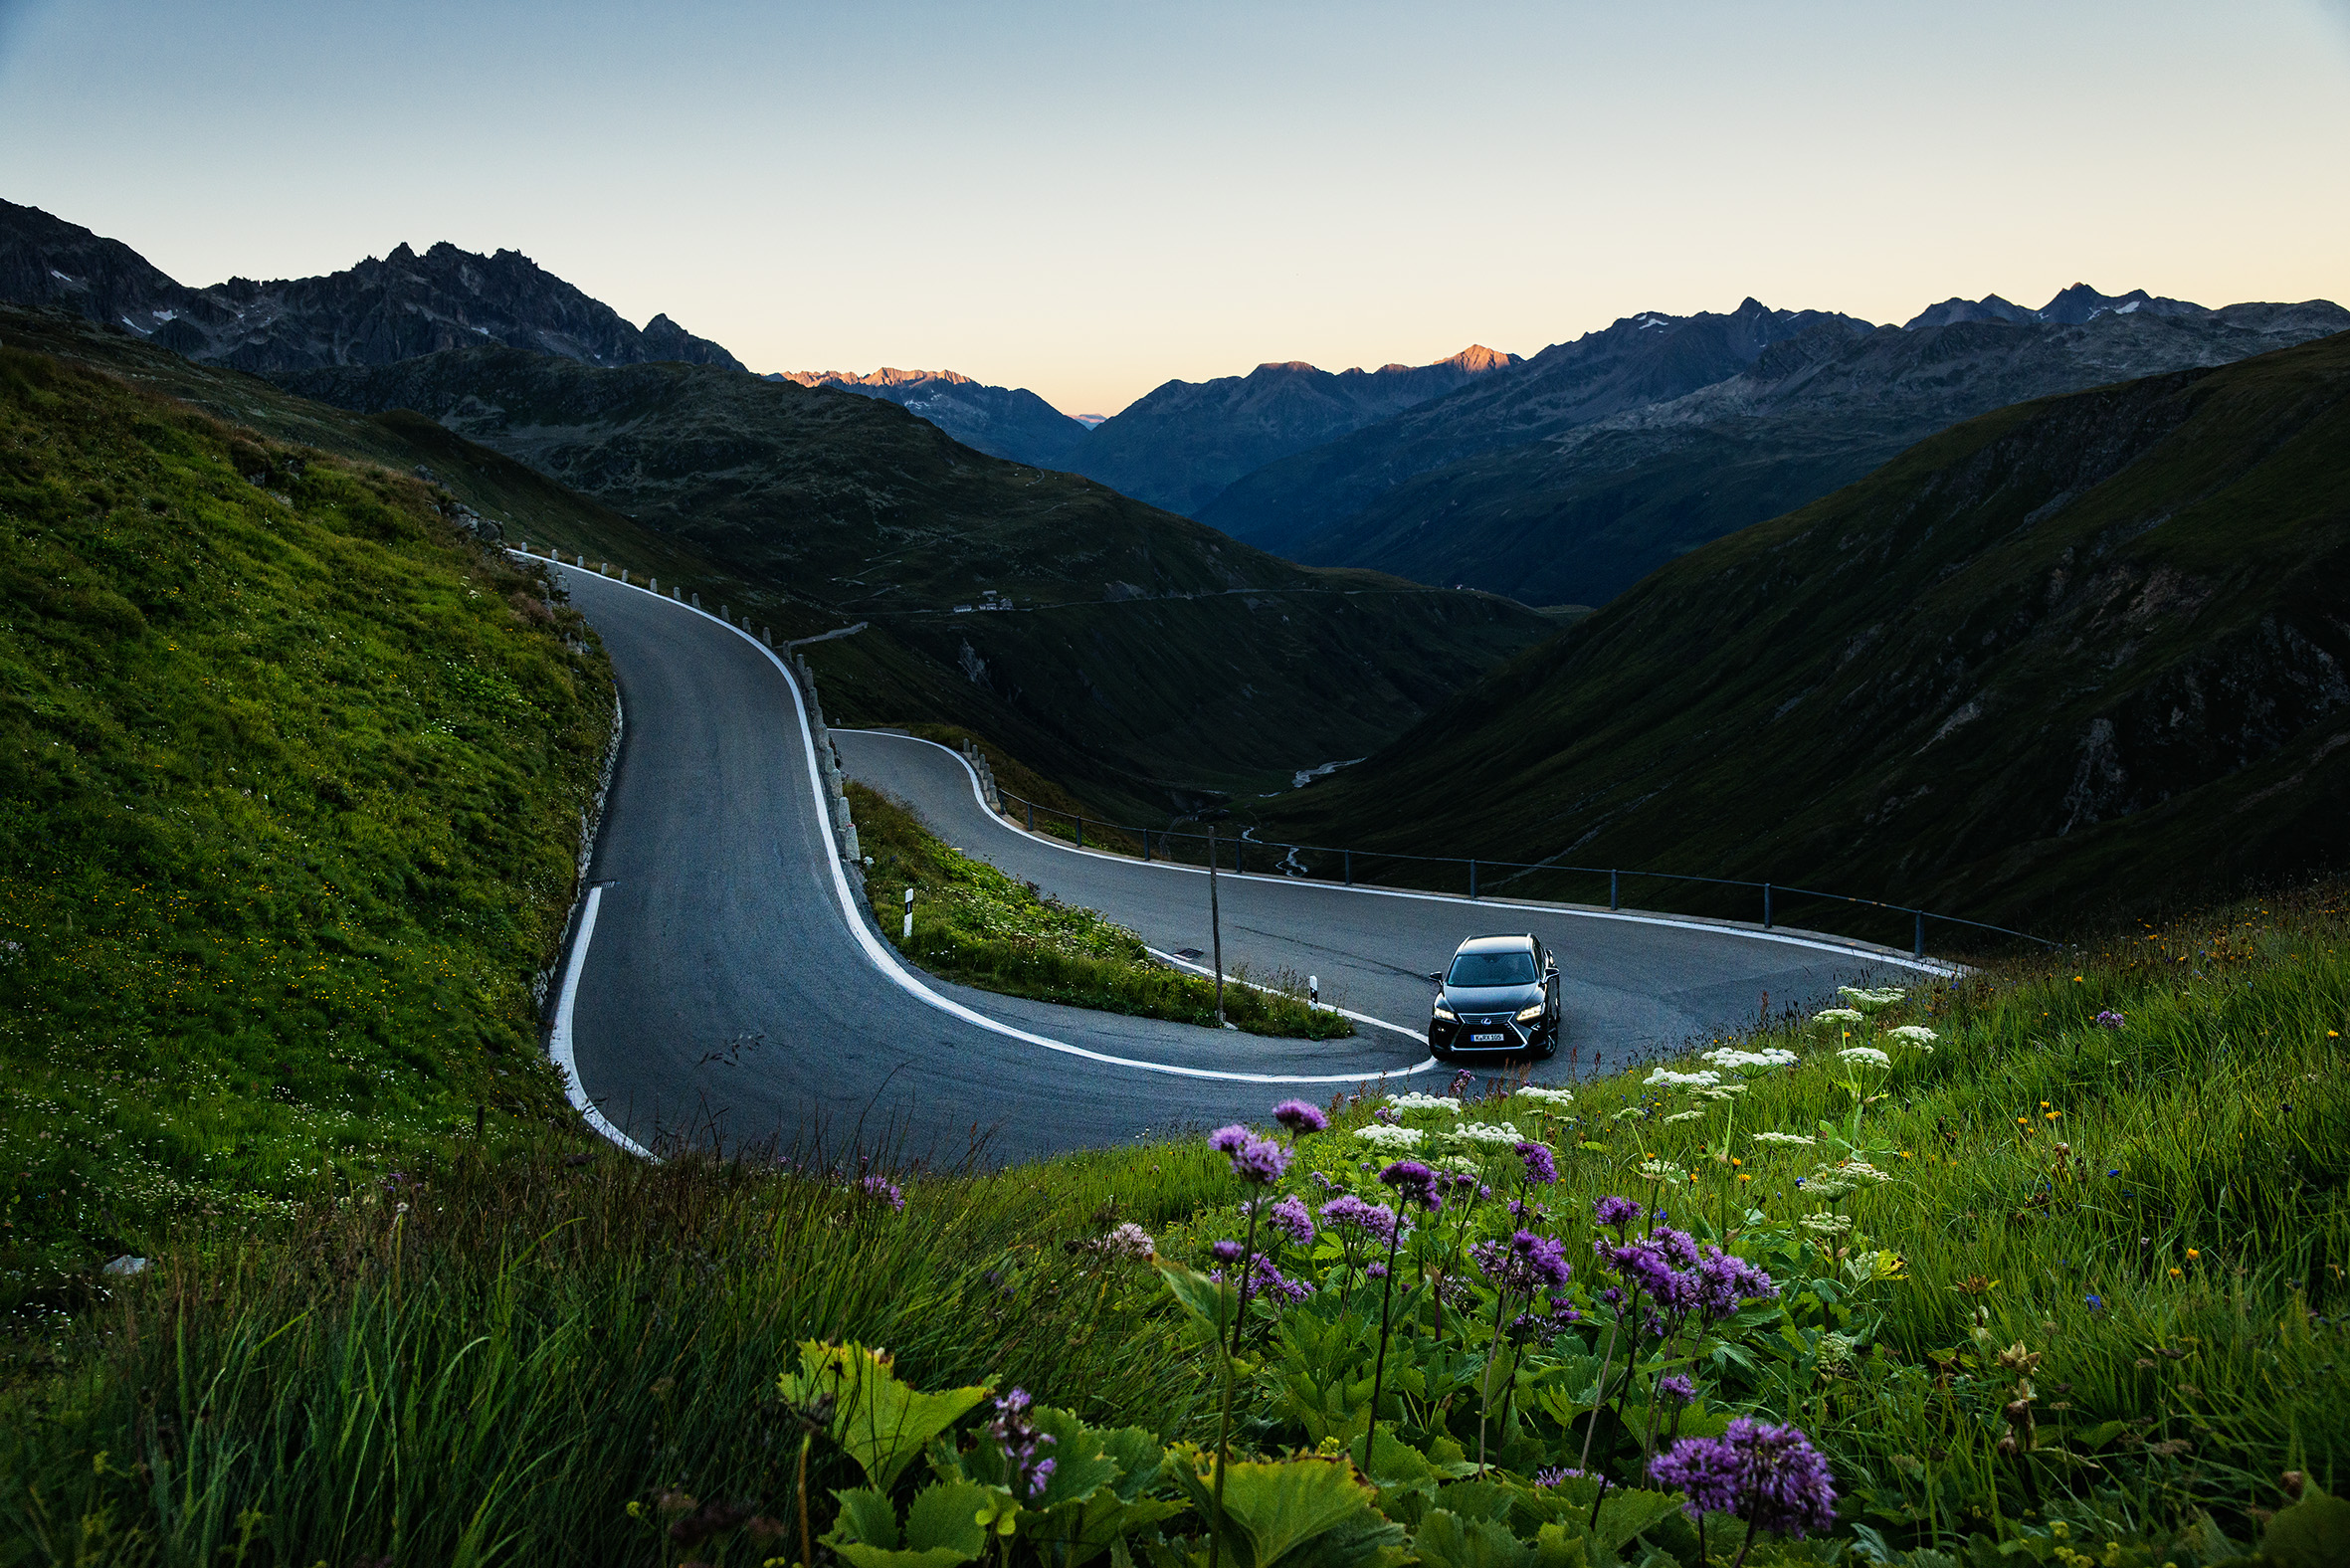 Story: Swiss Alps - Burning Curves